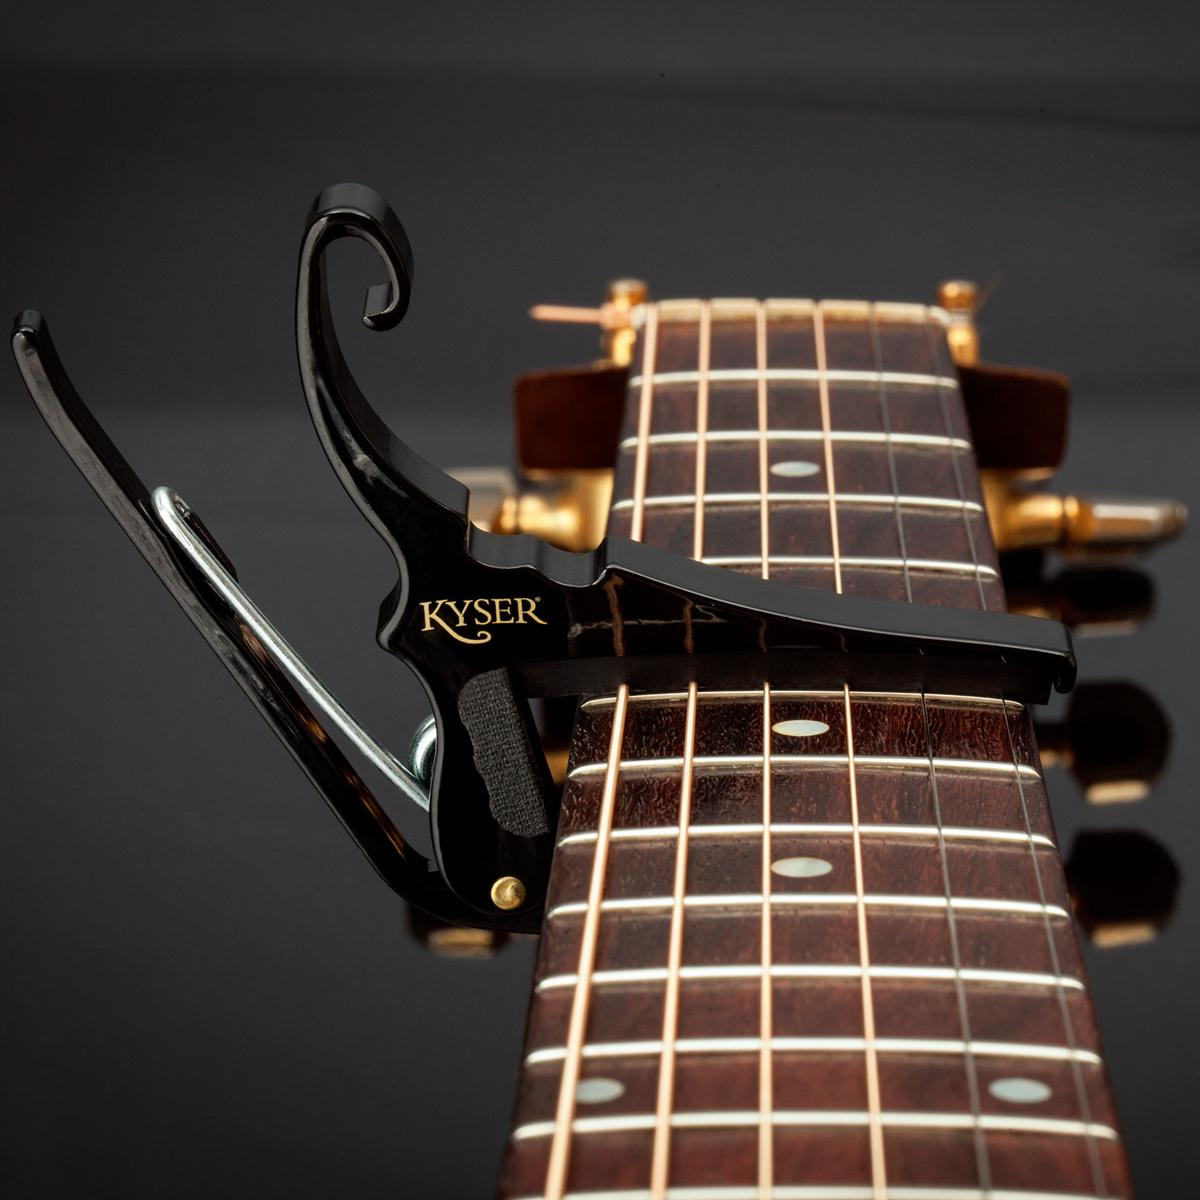 KYSER KGEB Capo Quick-change Black - Electric guitar